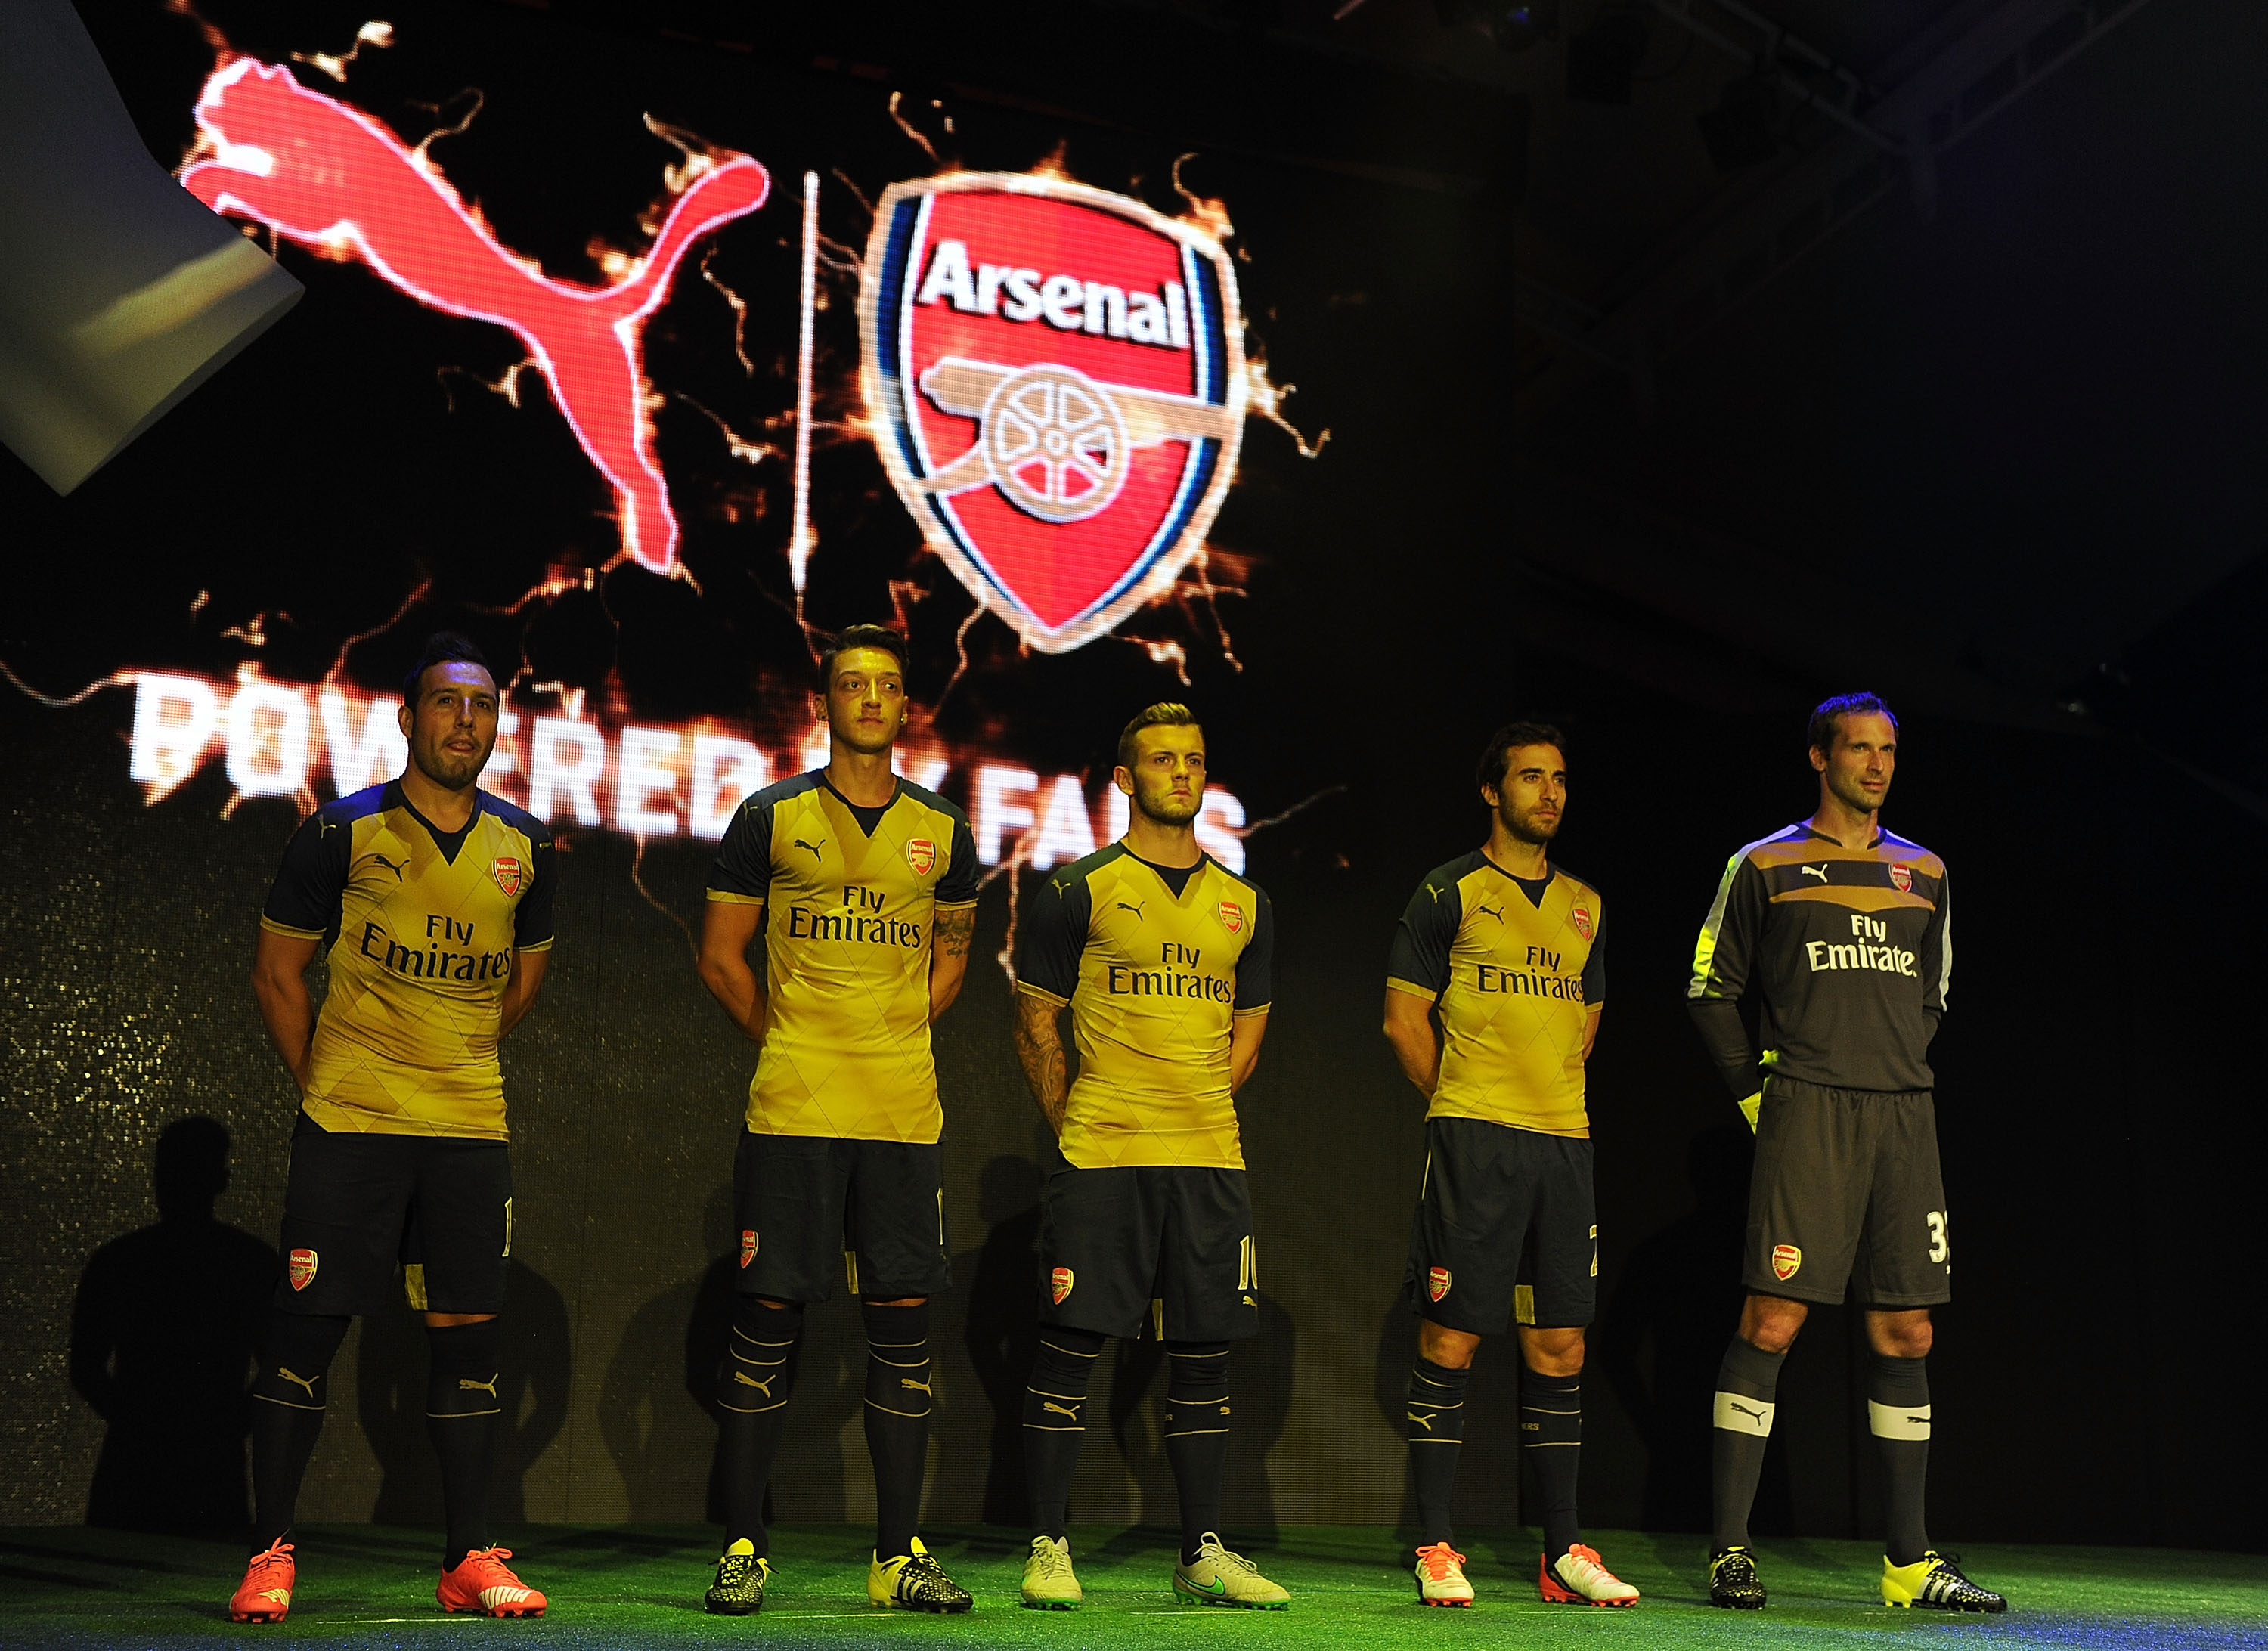 d0c54bb40 PUMA REVEALS 2015 16 ARSENAL AWAY KIT AT FAN EVENT IN SINGAPORE ...